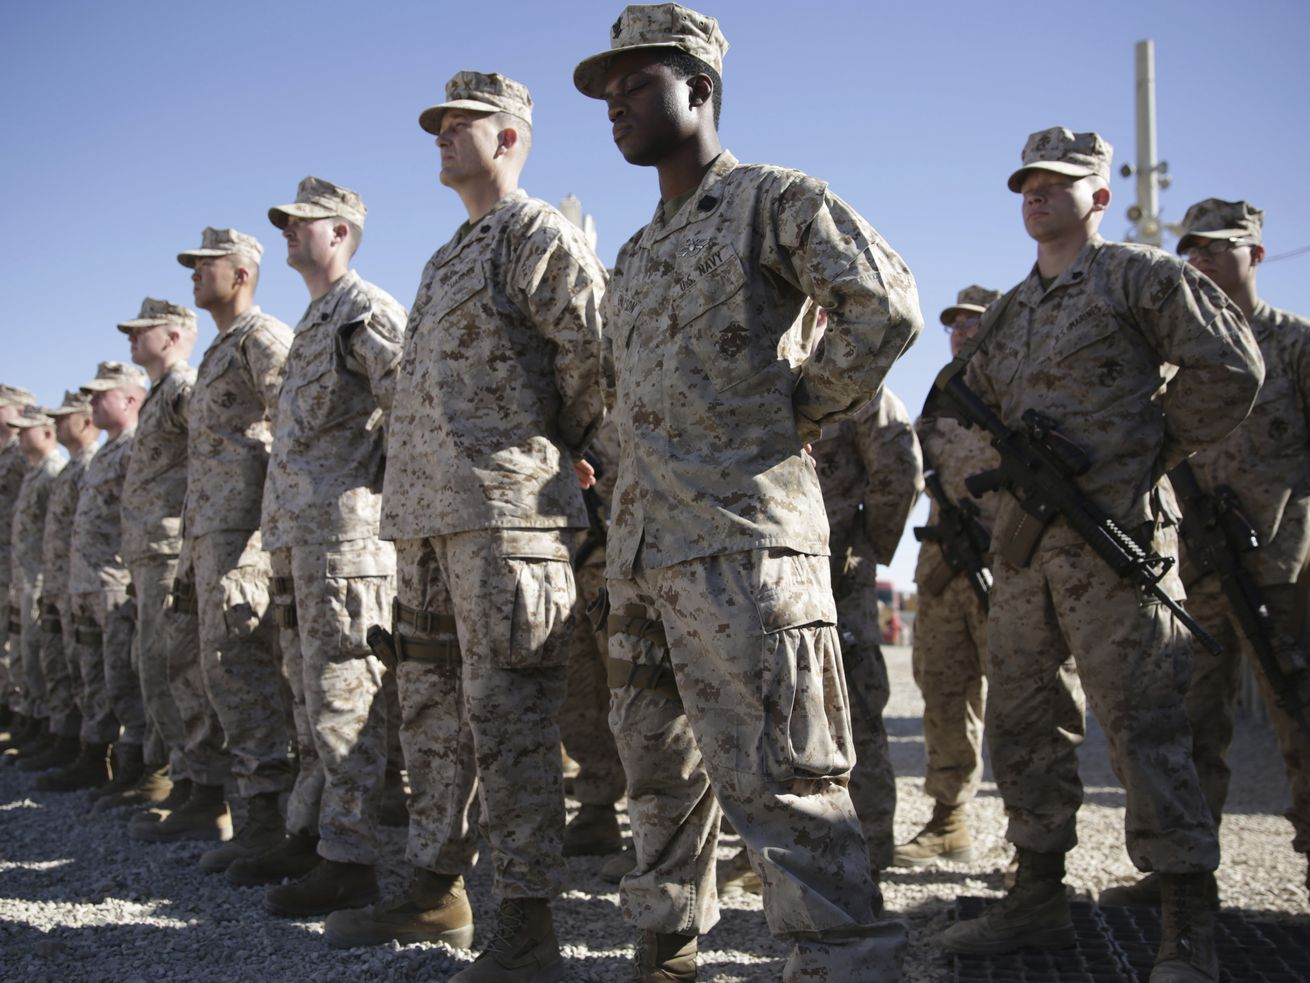 Pulling troops from Afghanistan would leave the job undone